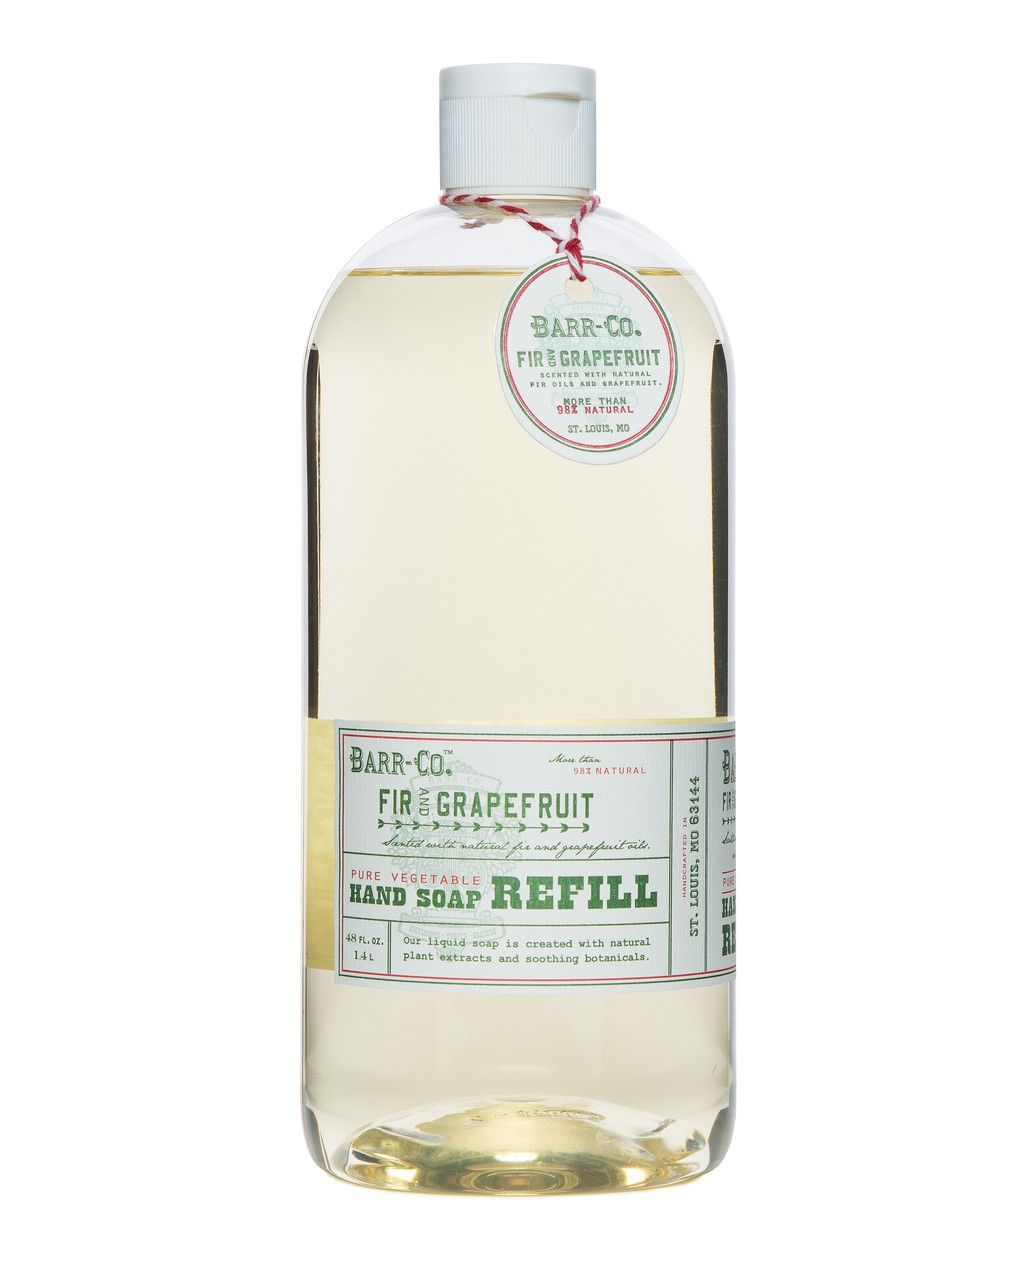 Barr-Co. Fir & Grapefruit Hand Soap Refill